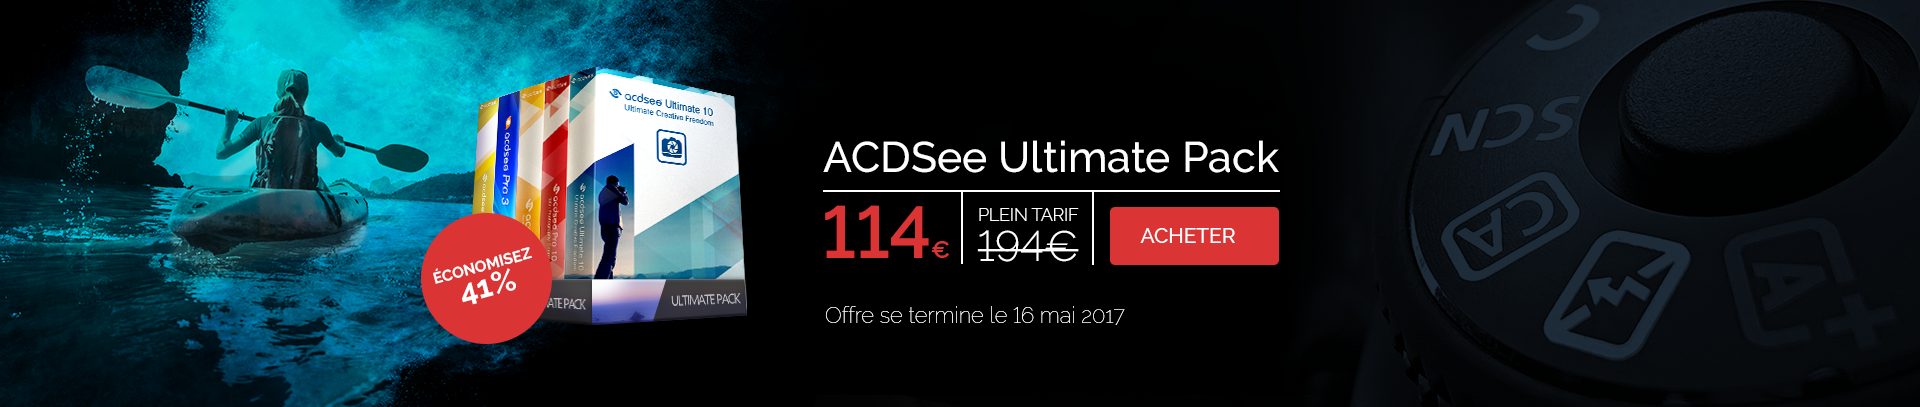 ACDSee April Campaign